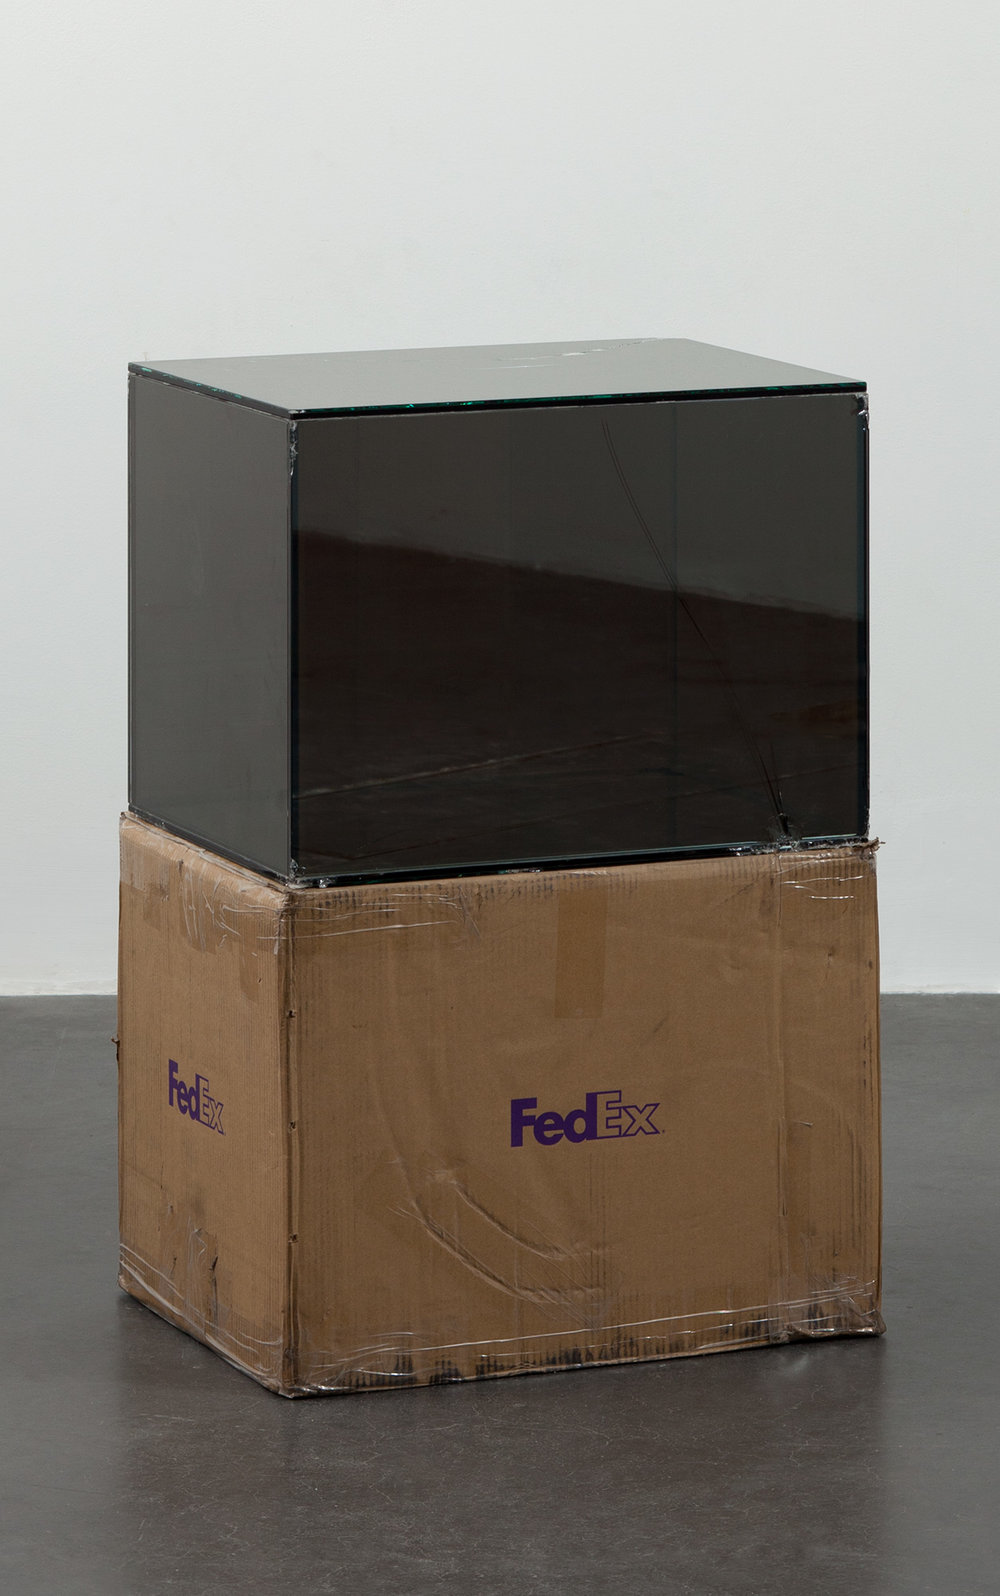 FedEx Large Kraft Box 2004 FEDEX 155143 REV 10/04 SSCC, International Priority, Los Angeles–Beijing trk#875468976030, September 9–14, 2011, International Priority, Bejing–Paris trk#874594463967, March 13–15, 2012    2011–   Laminated Mirropane, FedEx shipping box, accrued FedEx shipping and tracking labels, silicone, metal, tape  23 5/8 x 18 1/2 x 18 1/2 inches   Securities and Exchanges, 2011